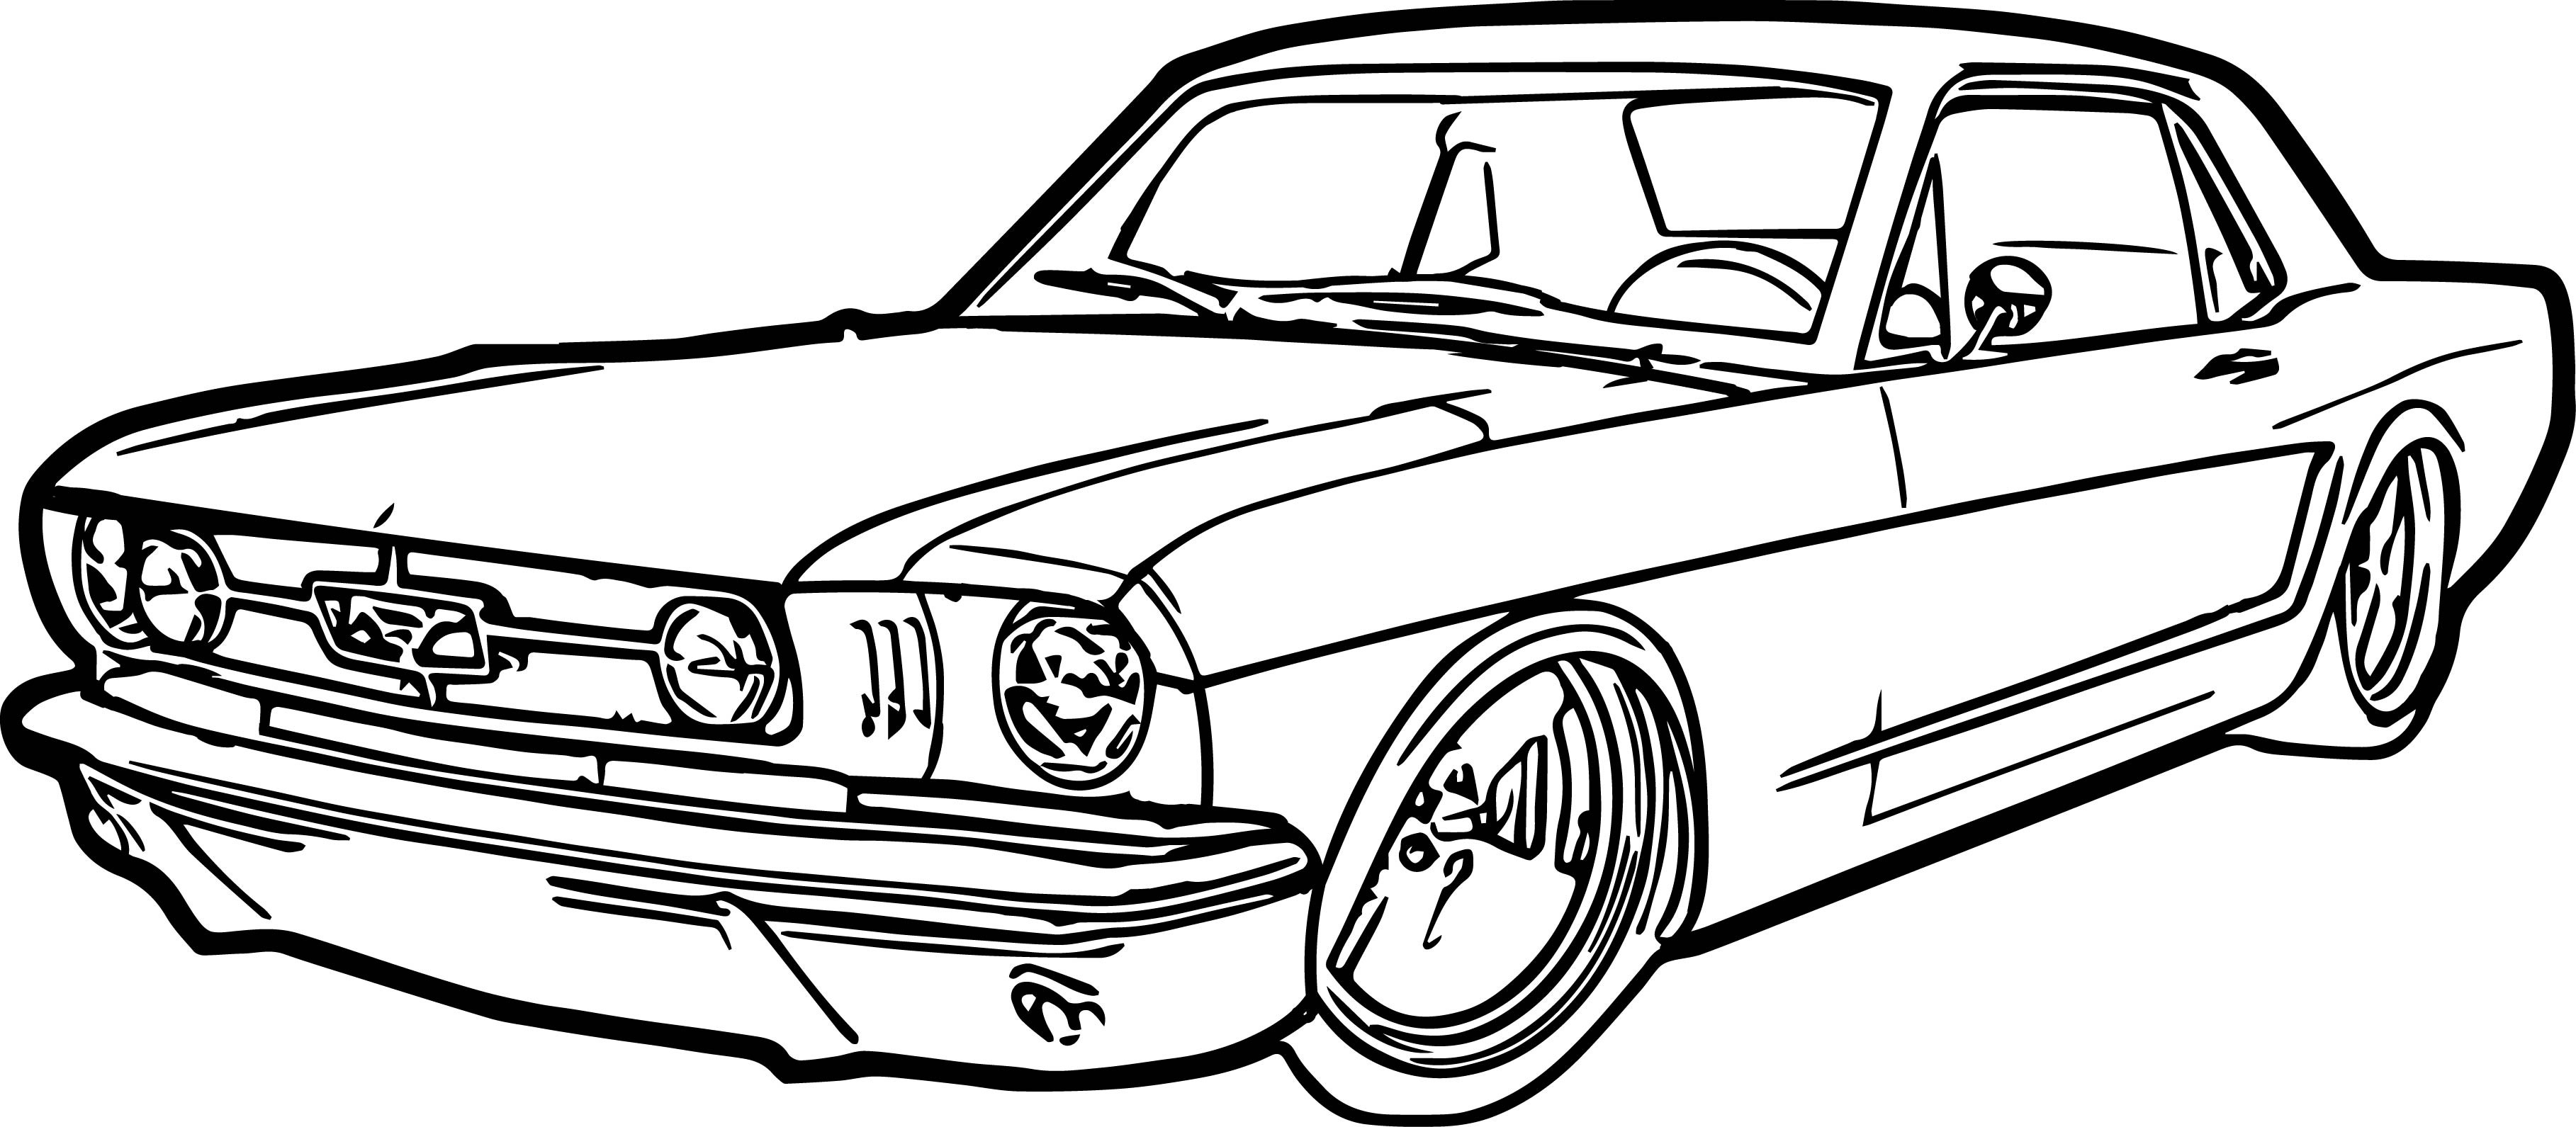 3635x1591 Mustang Coloring Pages Free Draw To Color